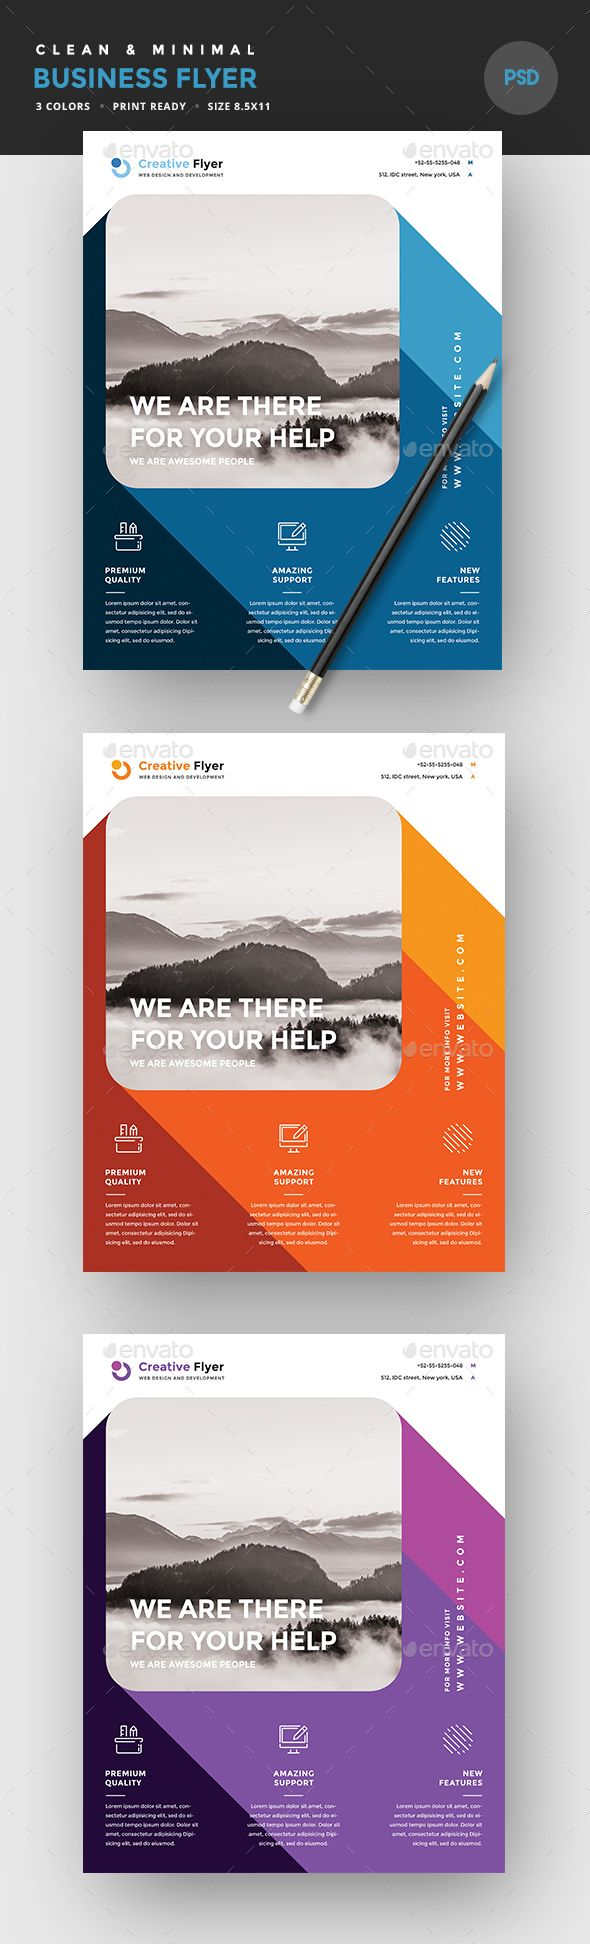 #Business #Flyer - Corporate Flyers Download here: https://graphicriver.net/item/business-flyer/19481437?ref=alena994